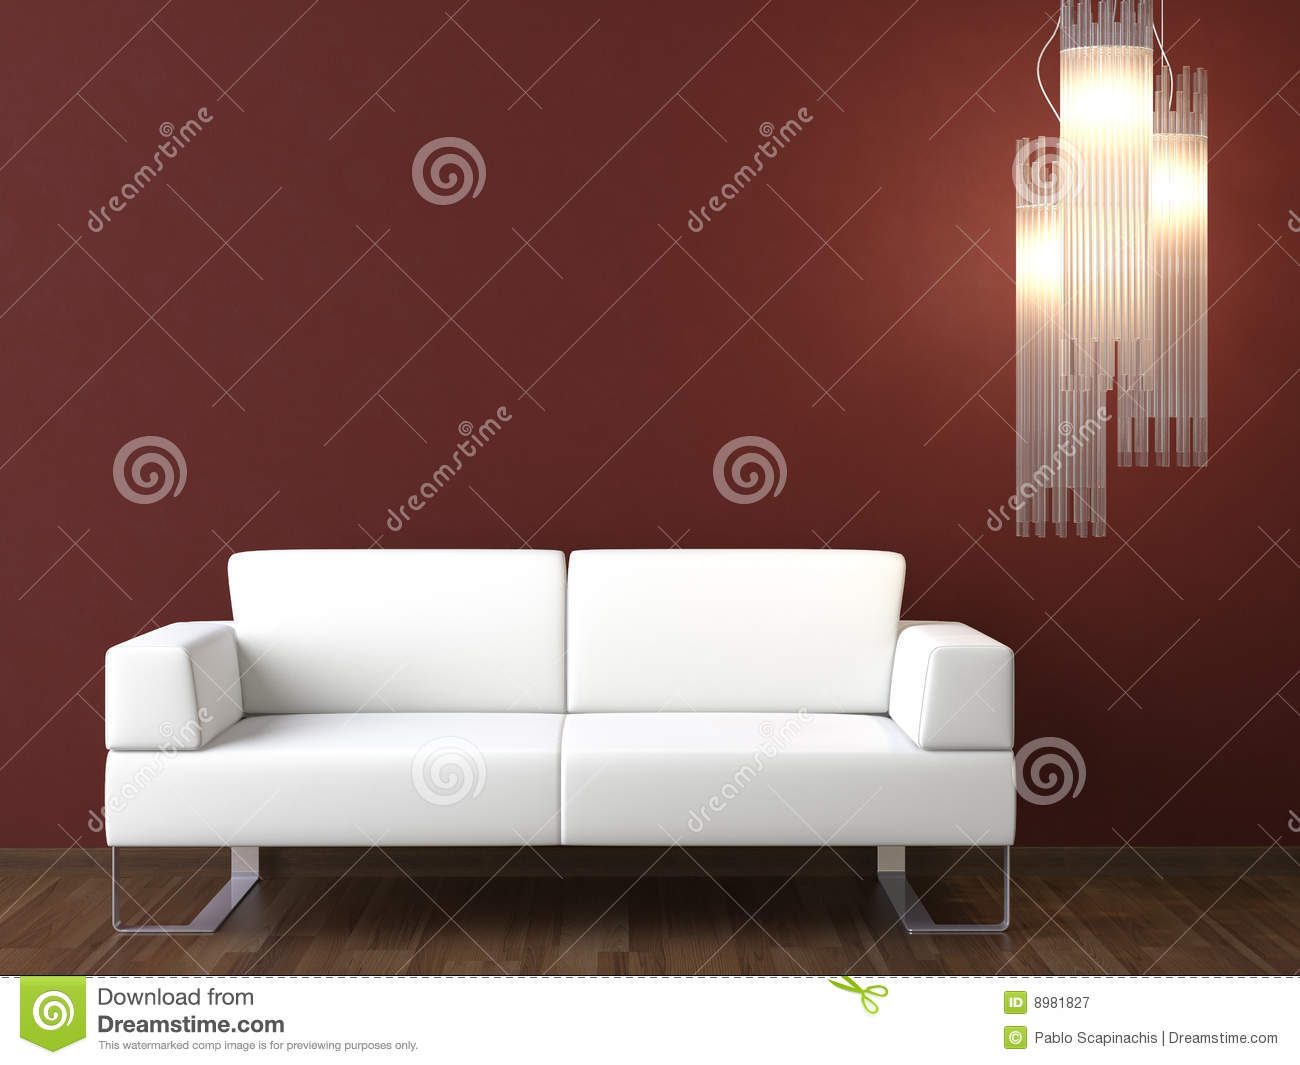 interior design white couch on bordeaux wall stock image image 8981827. Black Bedroom Furniture Sets. Home Design Ideas